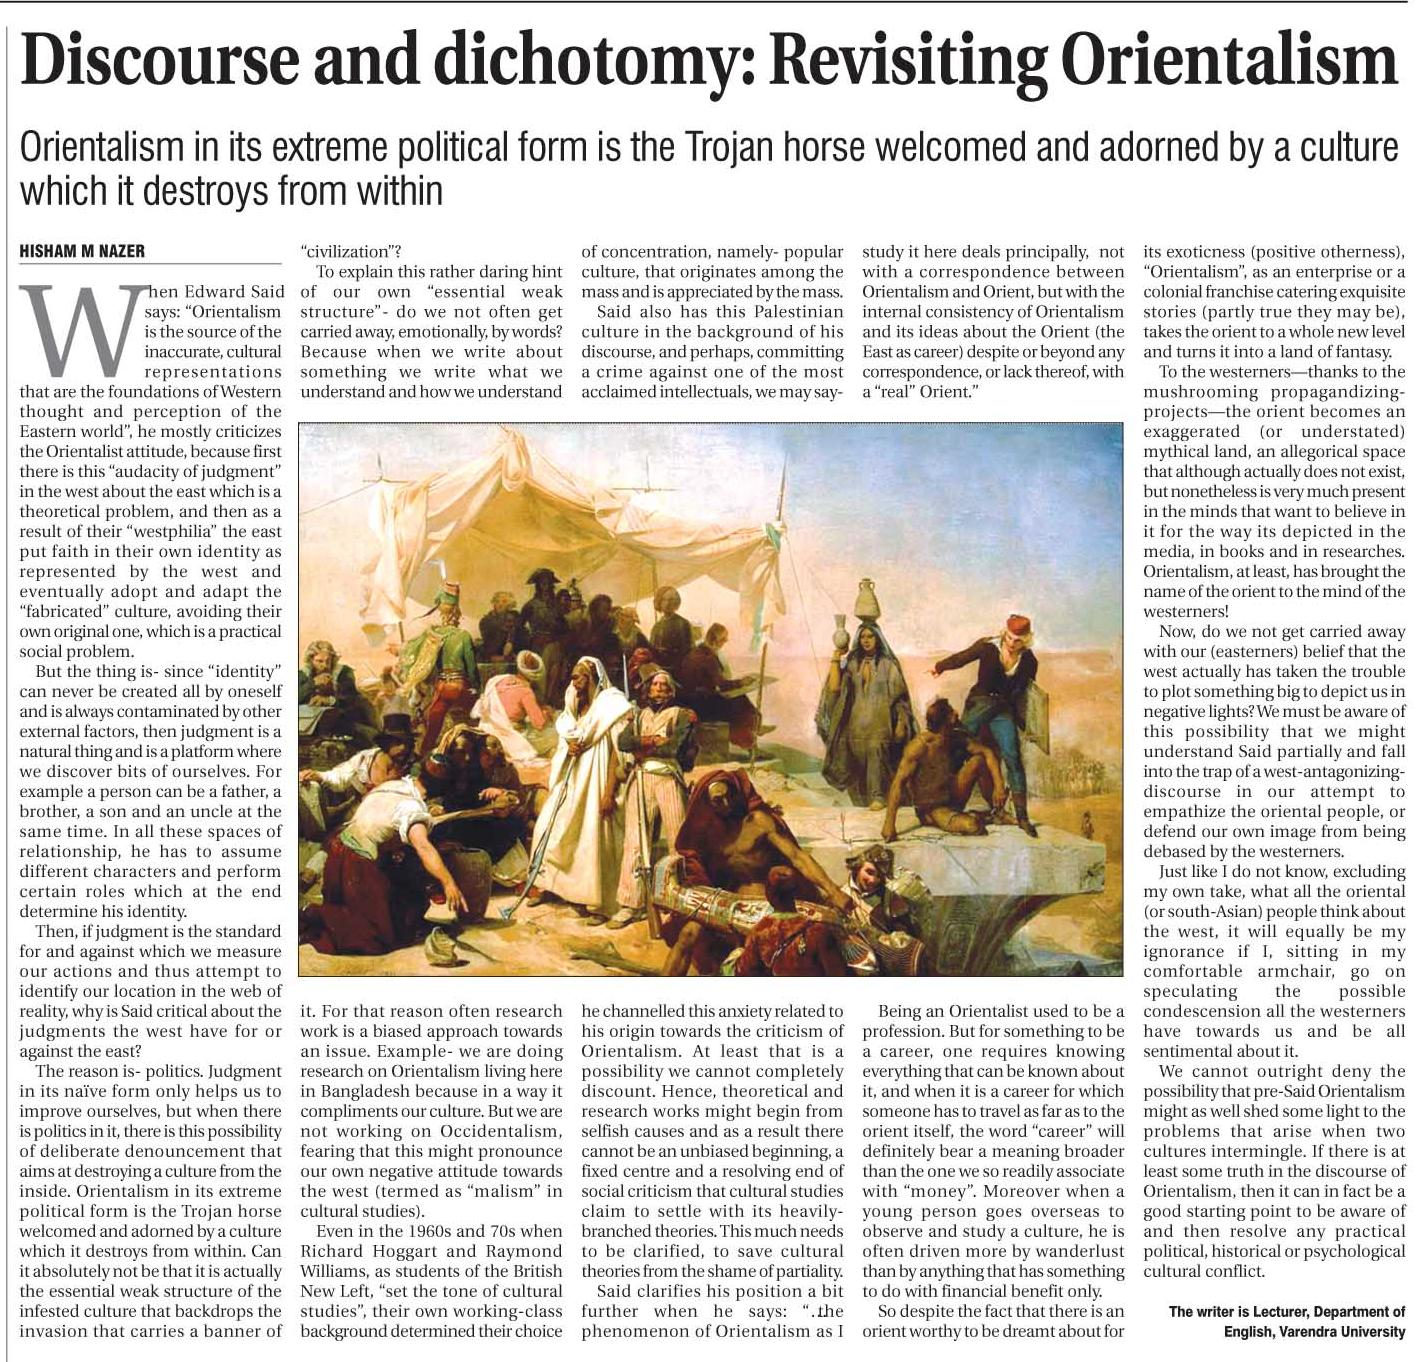 examining the definition of western orientalism cultural studies essay Orientalism: orientalism means the study of near and far eastern societies and cultures, languages, and peoples by western scholars orientalism by edward said is a cononical text of cultural studies in which he challenges the concept of orientalism or the difference between east and west.